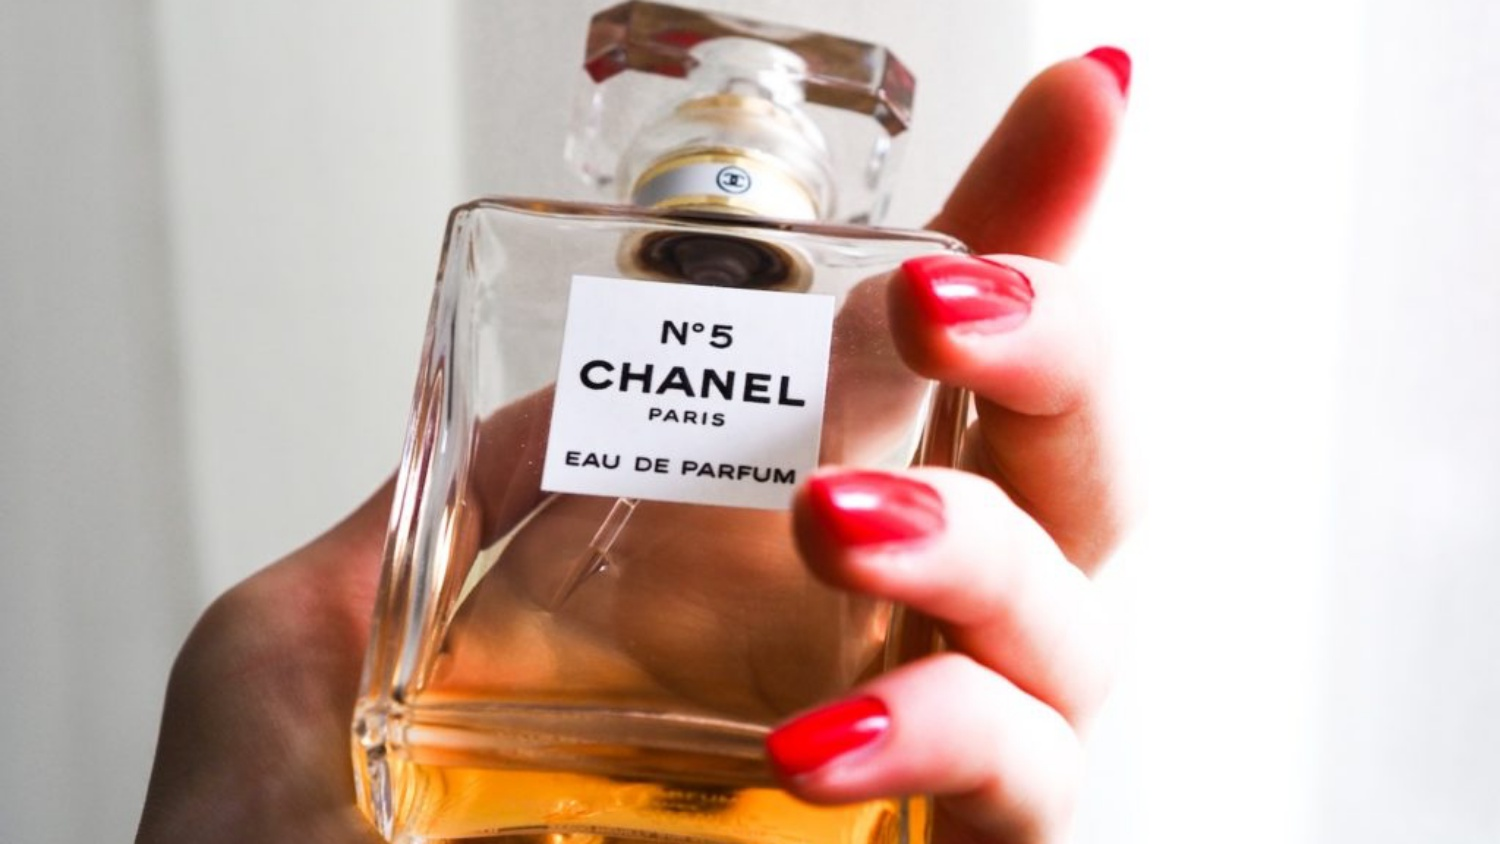 How Chanel No. 5 remains the world's most popular perfume 100 years on